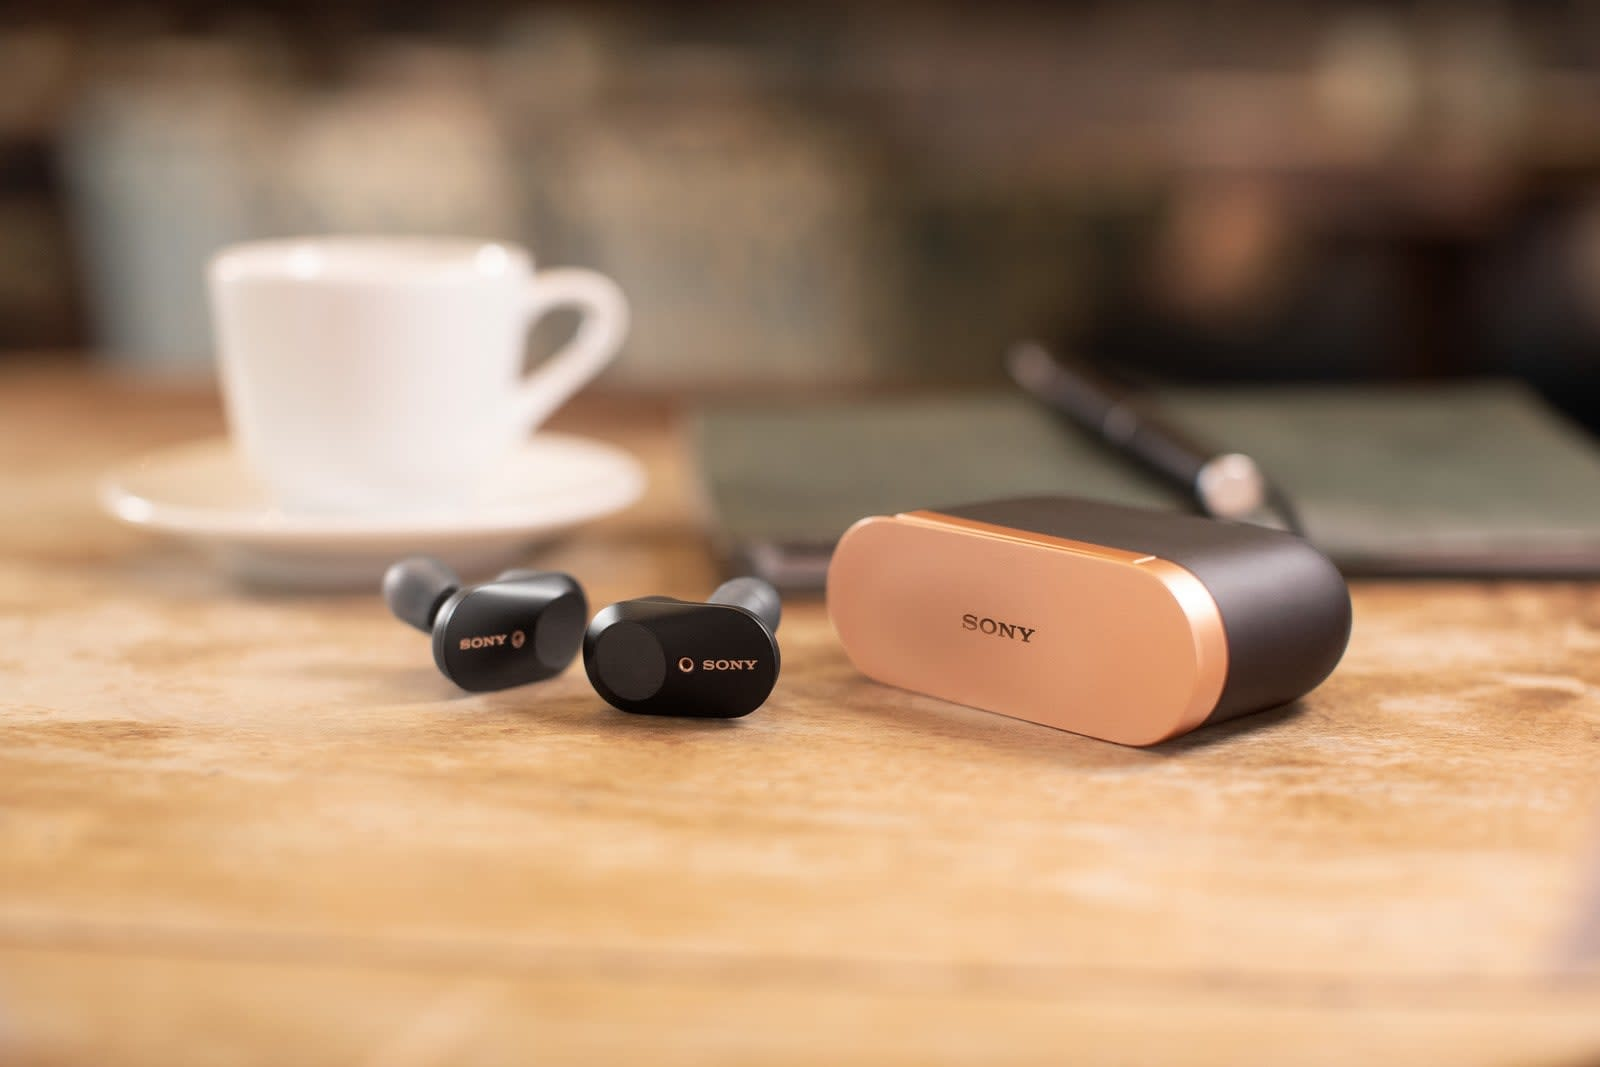 a2e58ca7e36 Sony's revamped wireless noise-canceling earbuds are a revelation